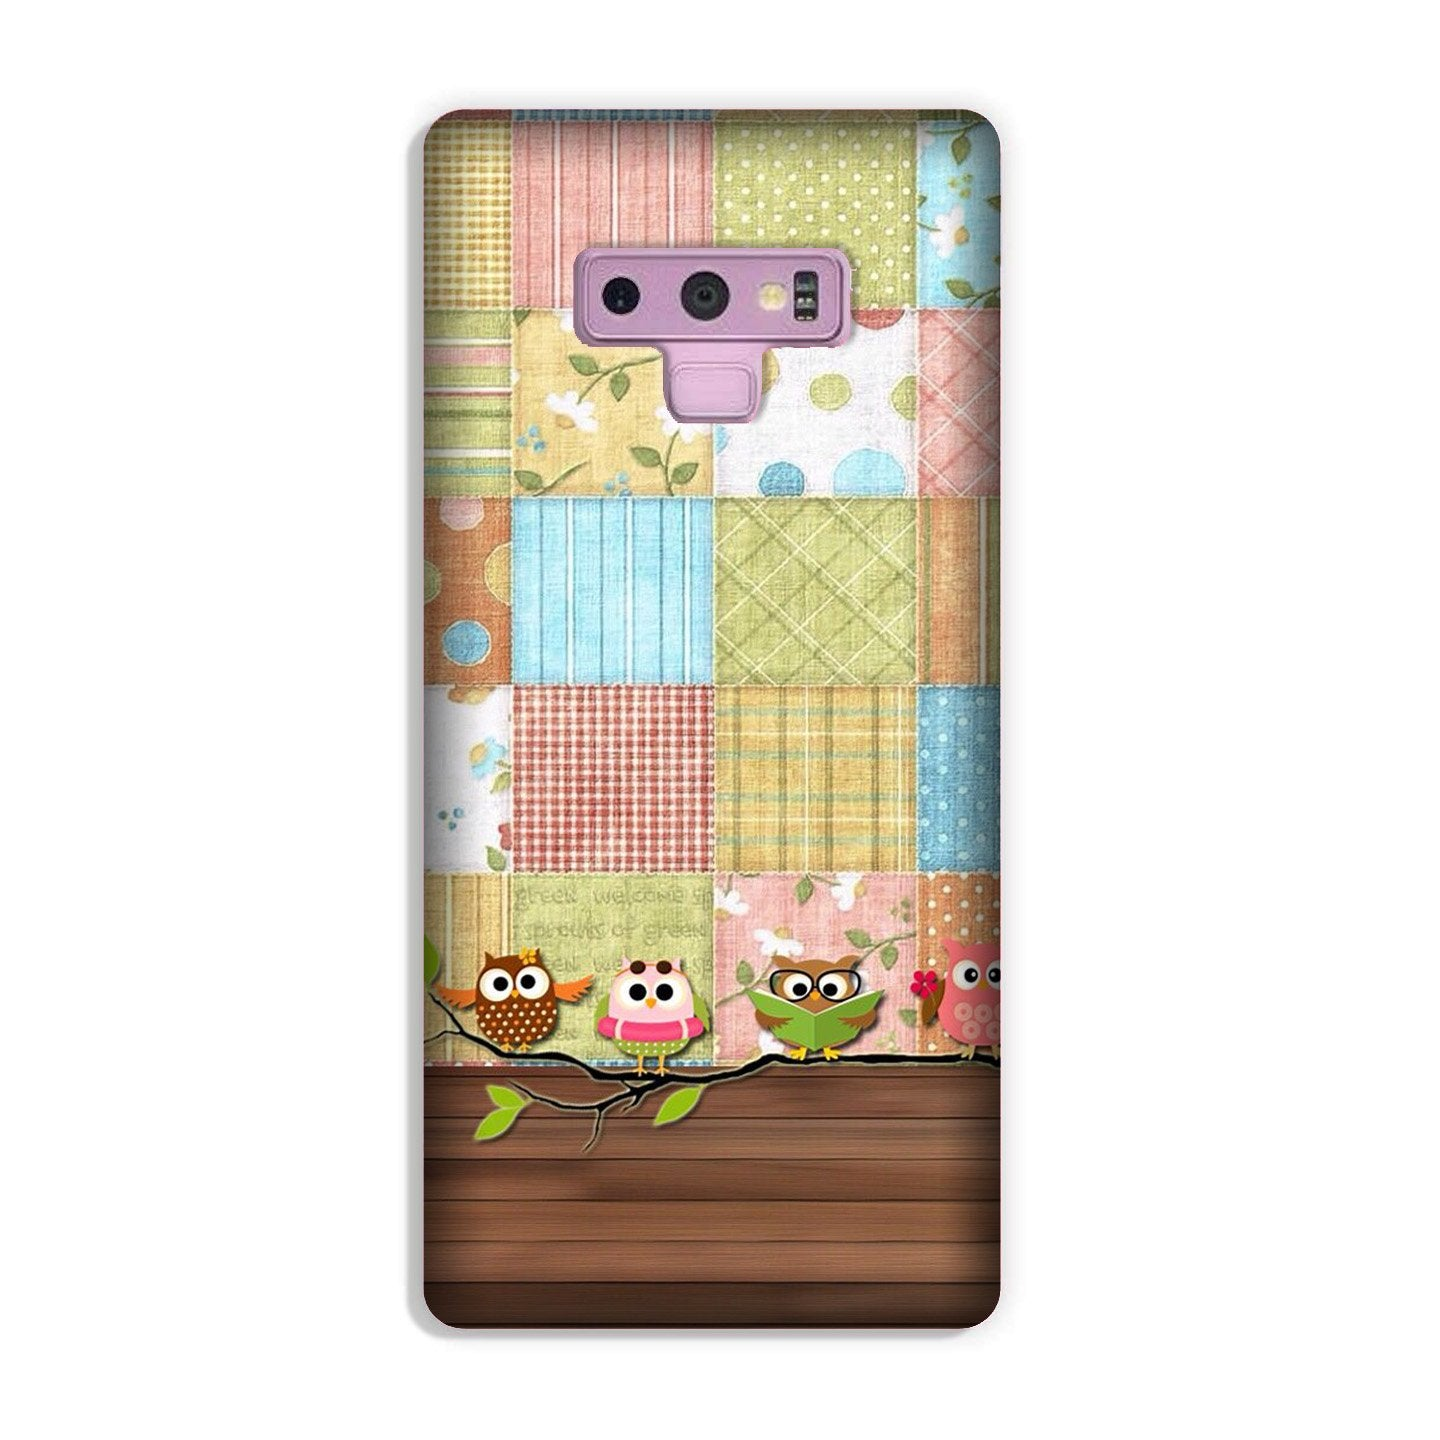 Owls Case for Galaxy Note 9 (Design - 202)